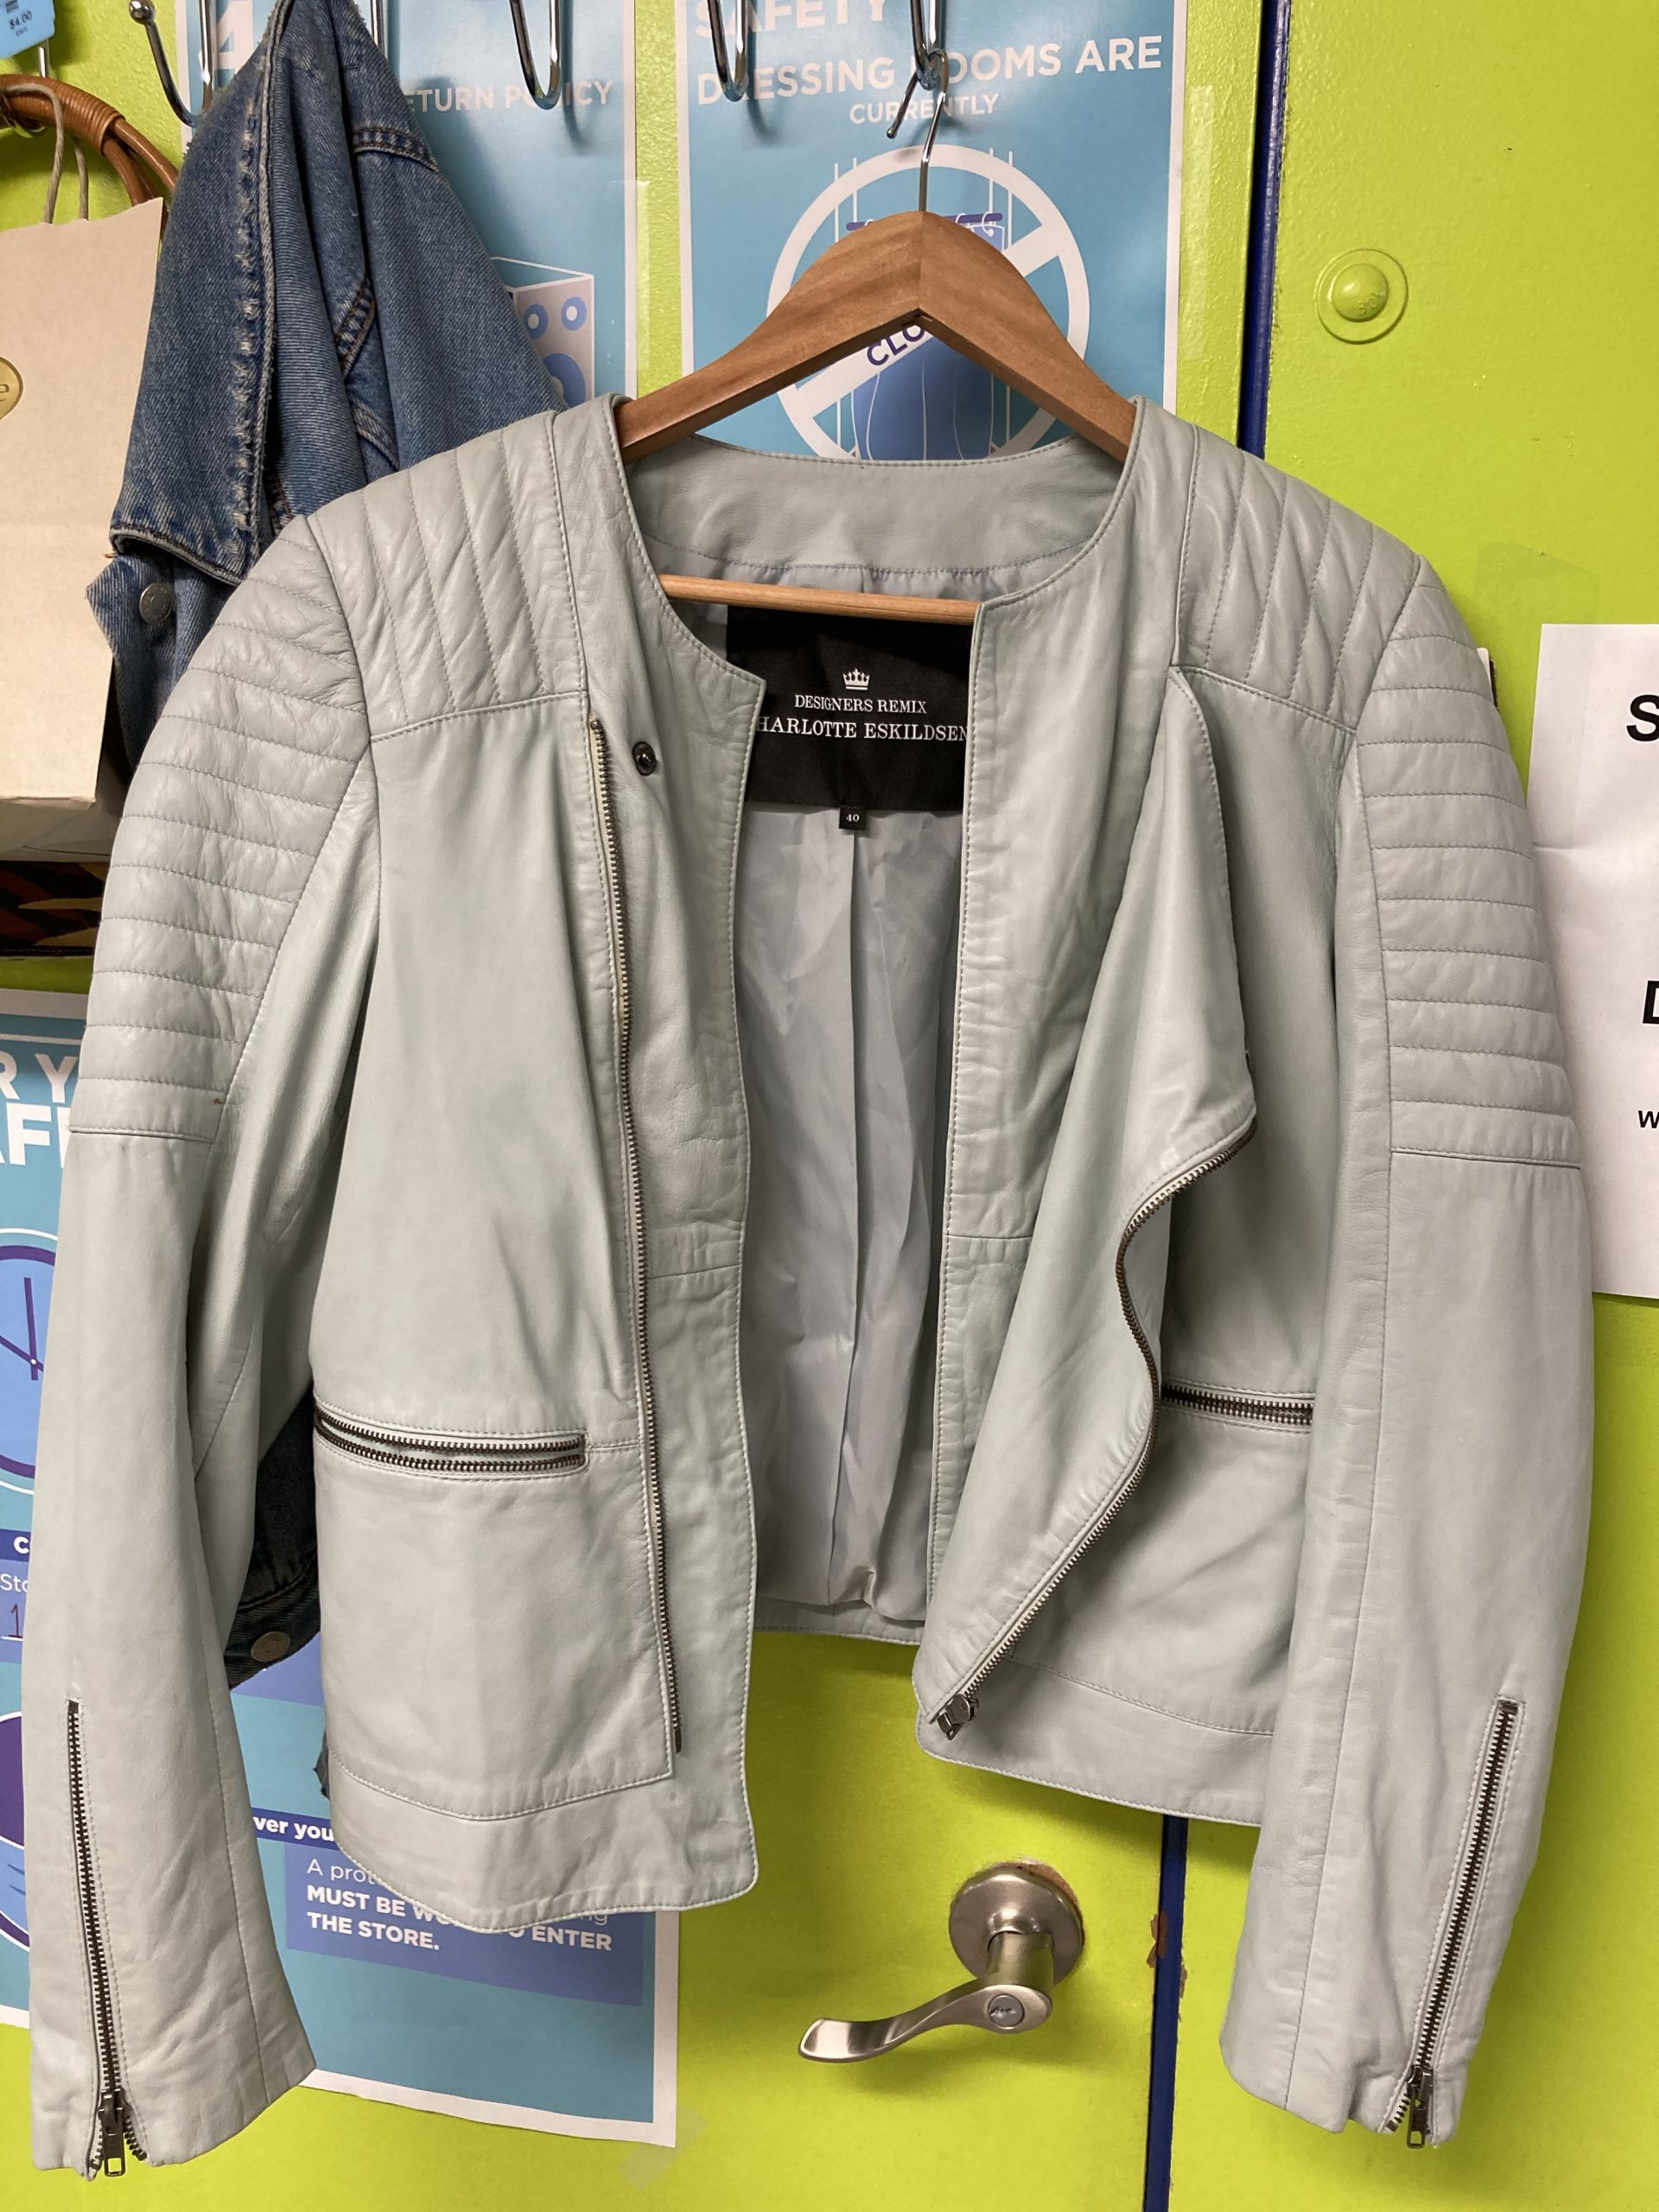 gray leather jacket at Goodwill